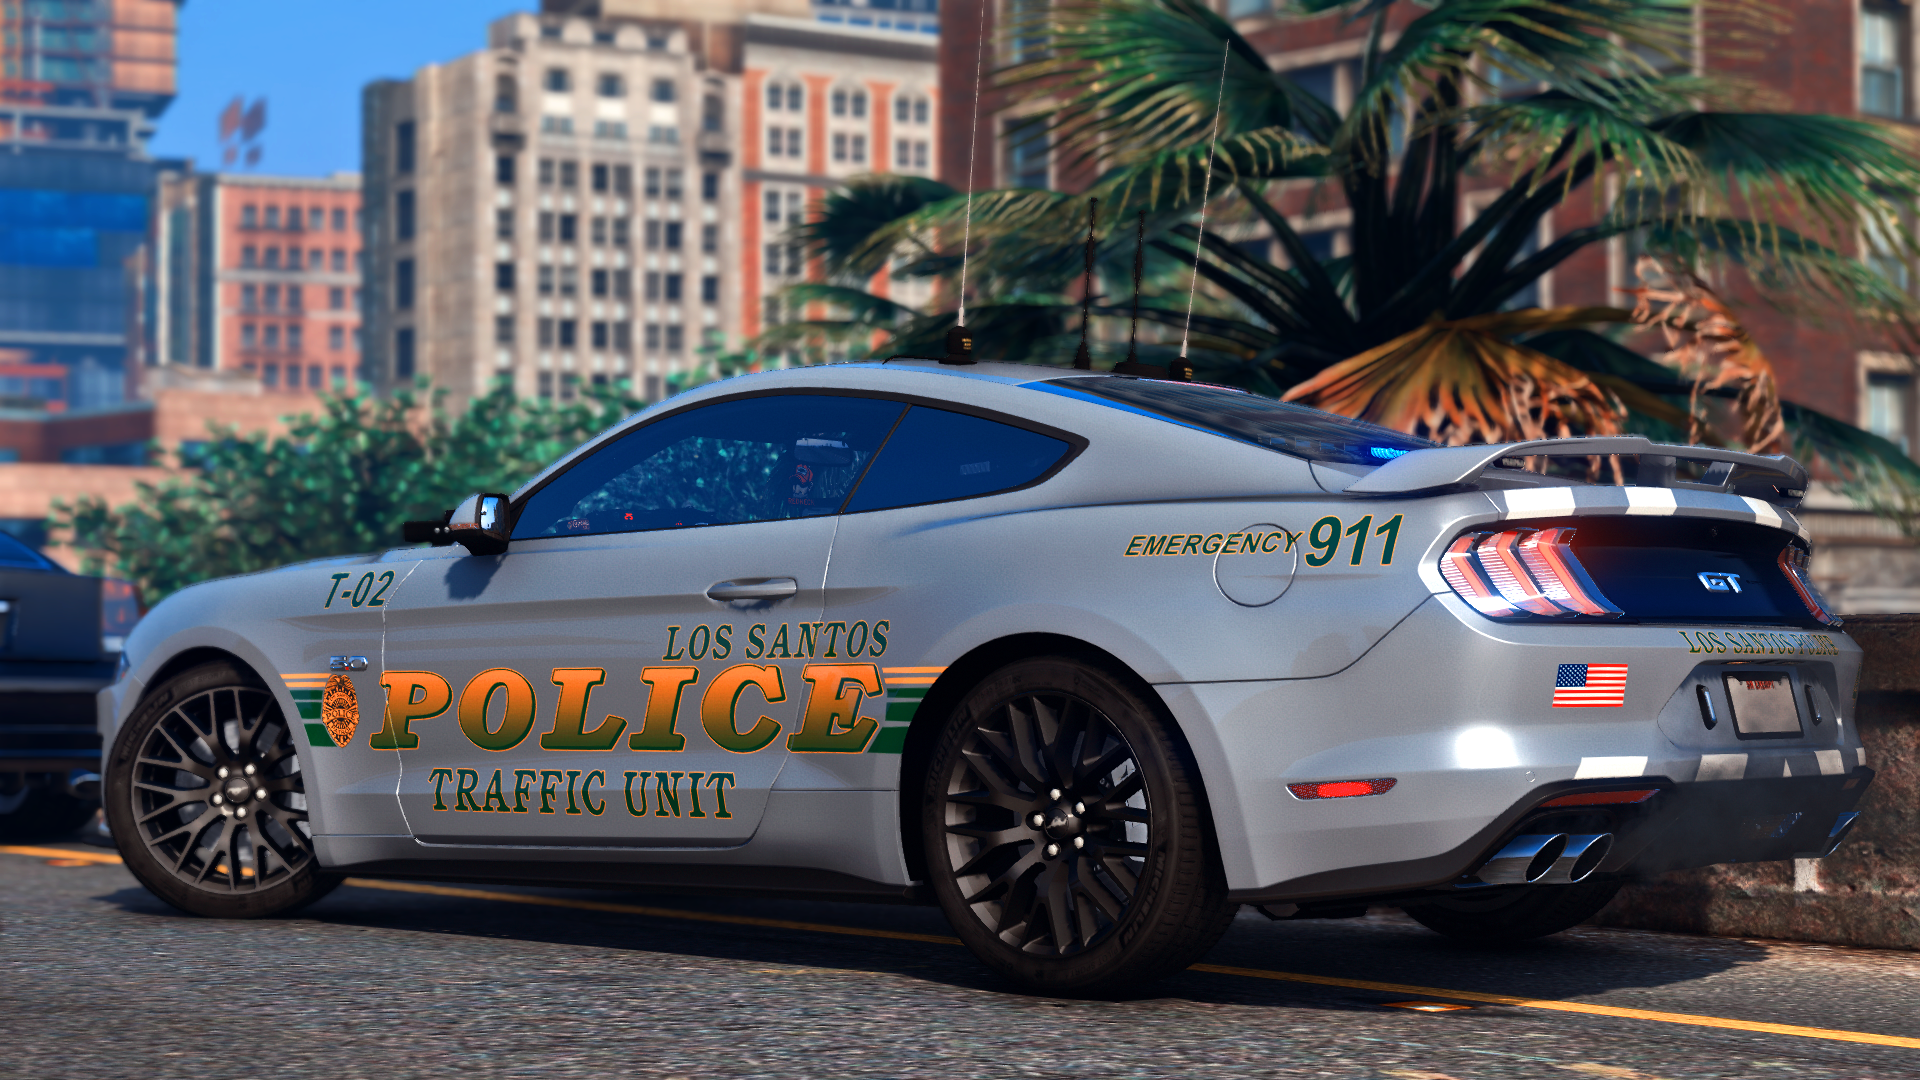 The traffic units always catch up; especially this beast.